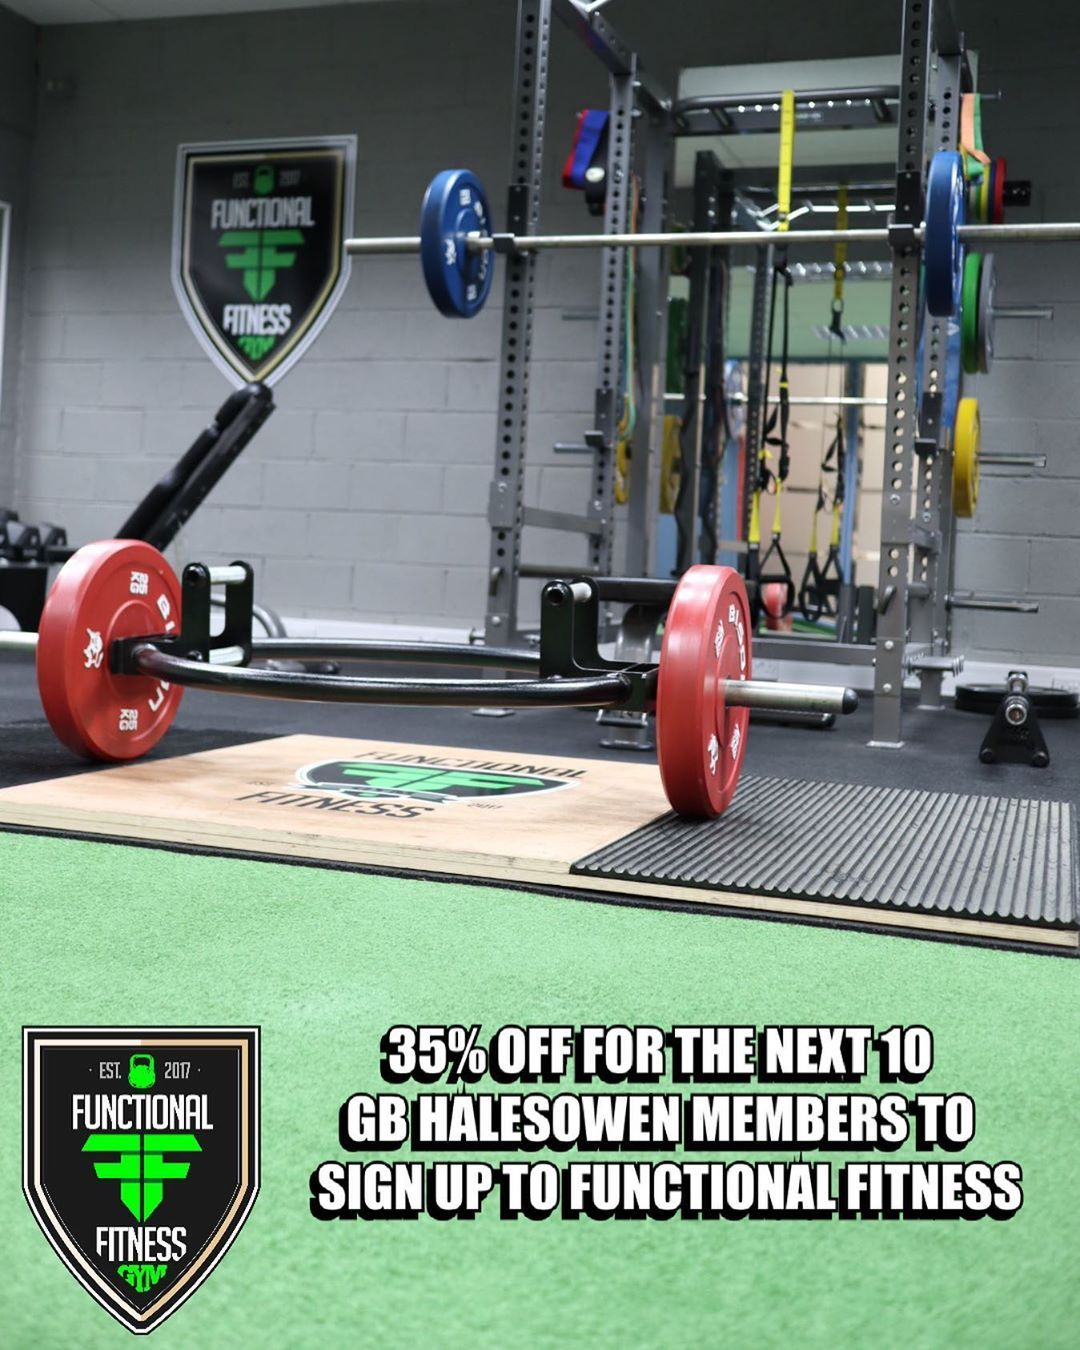 We are offer 35% off the functional fitness memberships for the next 10 GB Halesowen members to join...